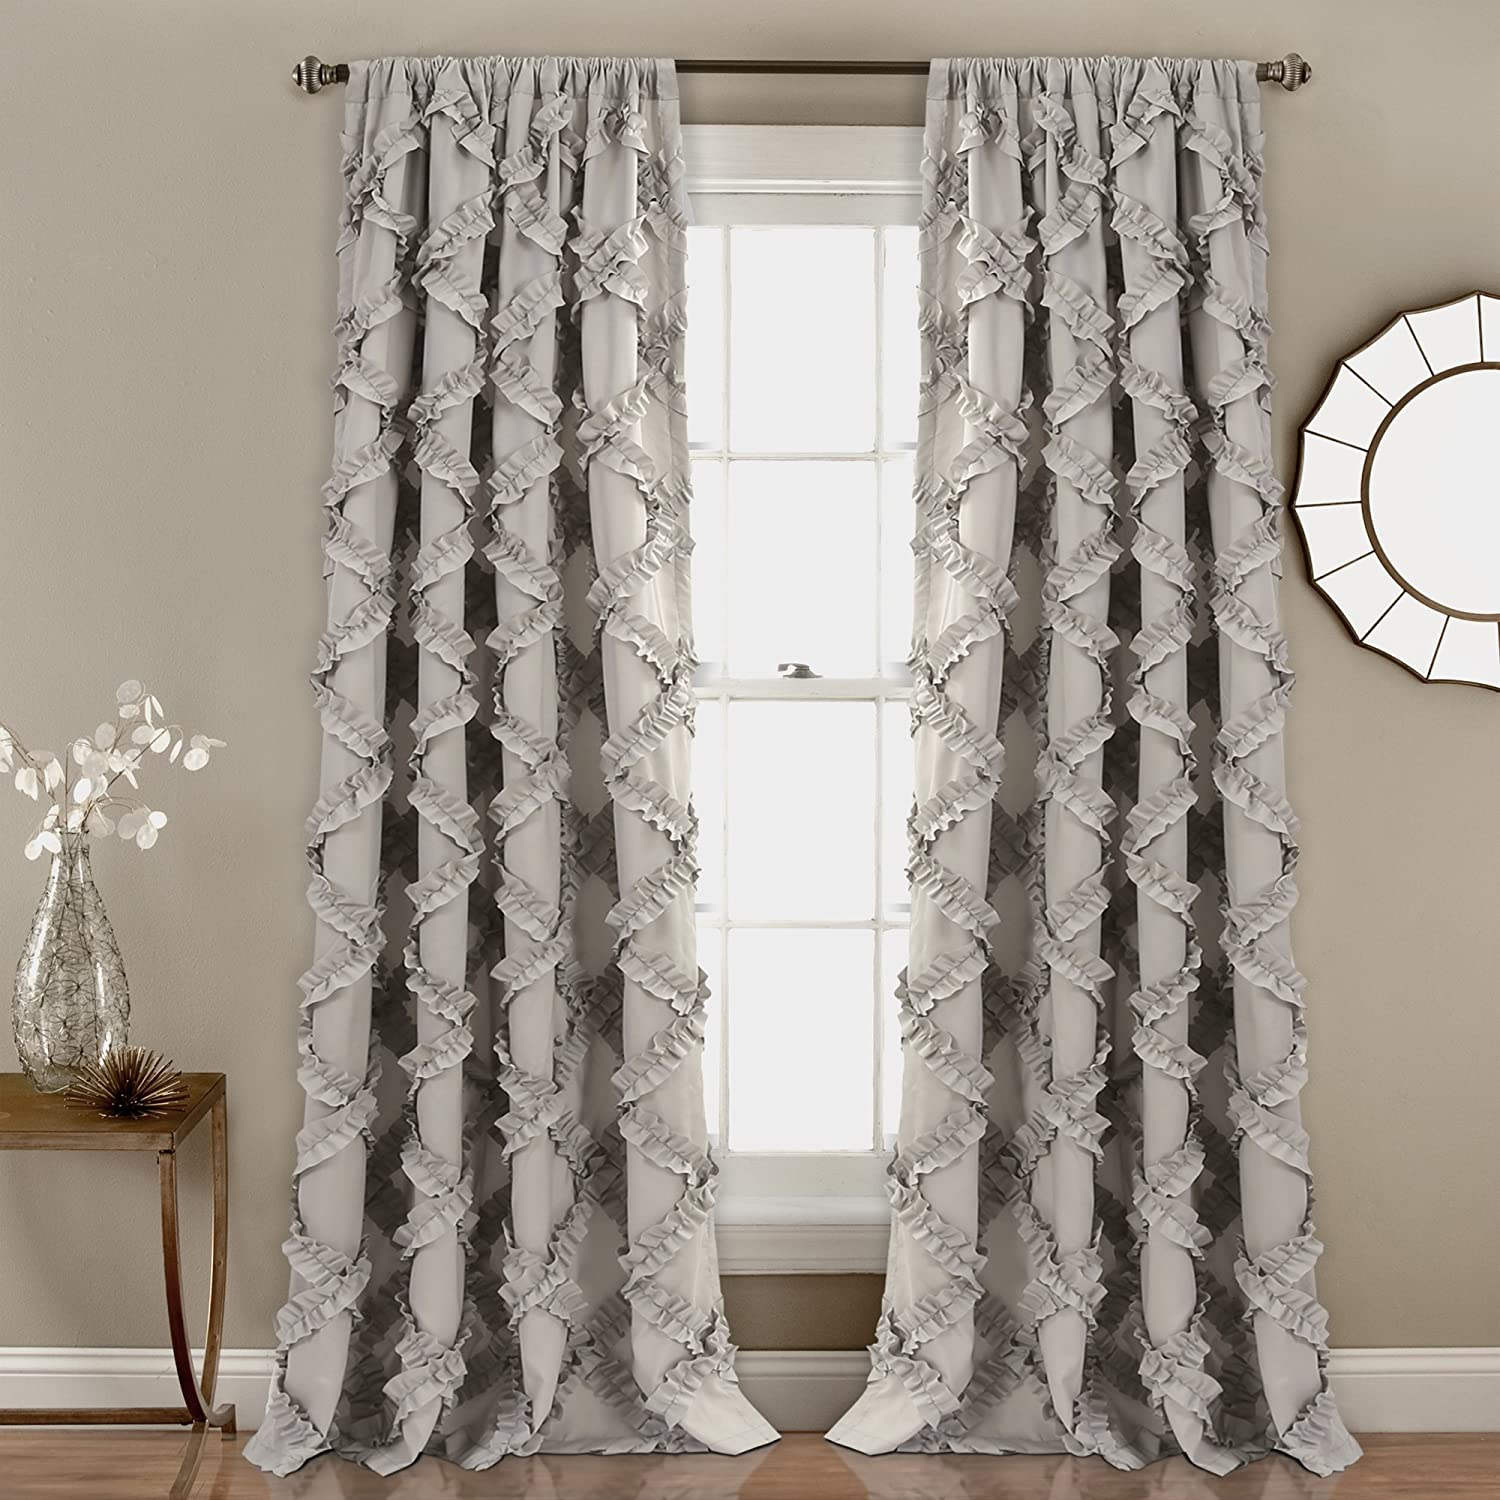 "Lush Decor Ruffle Diamond Curtains Textured Window Panel Set for Living, Dining Room, Bedroom (Pair), 84"" x 54"", Gray, 84"" x 54"","